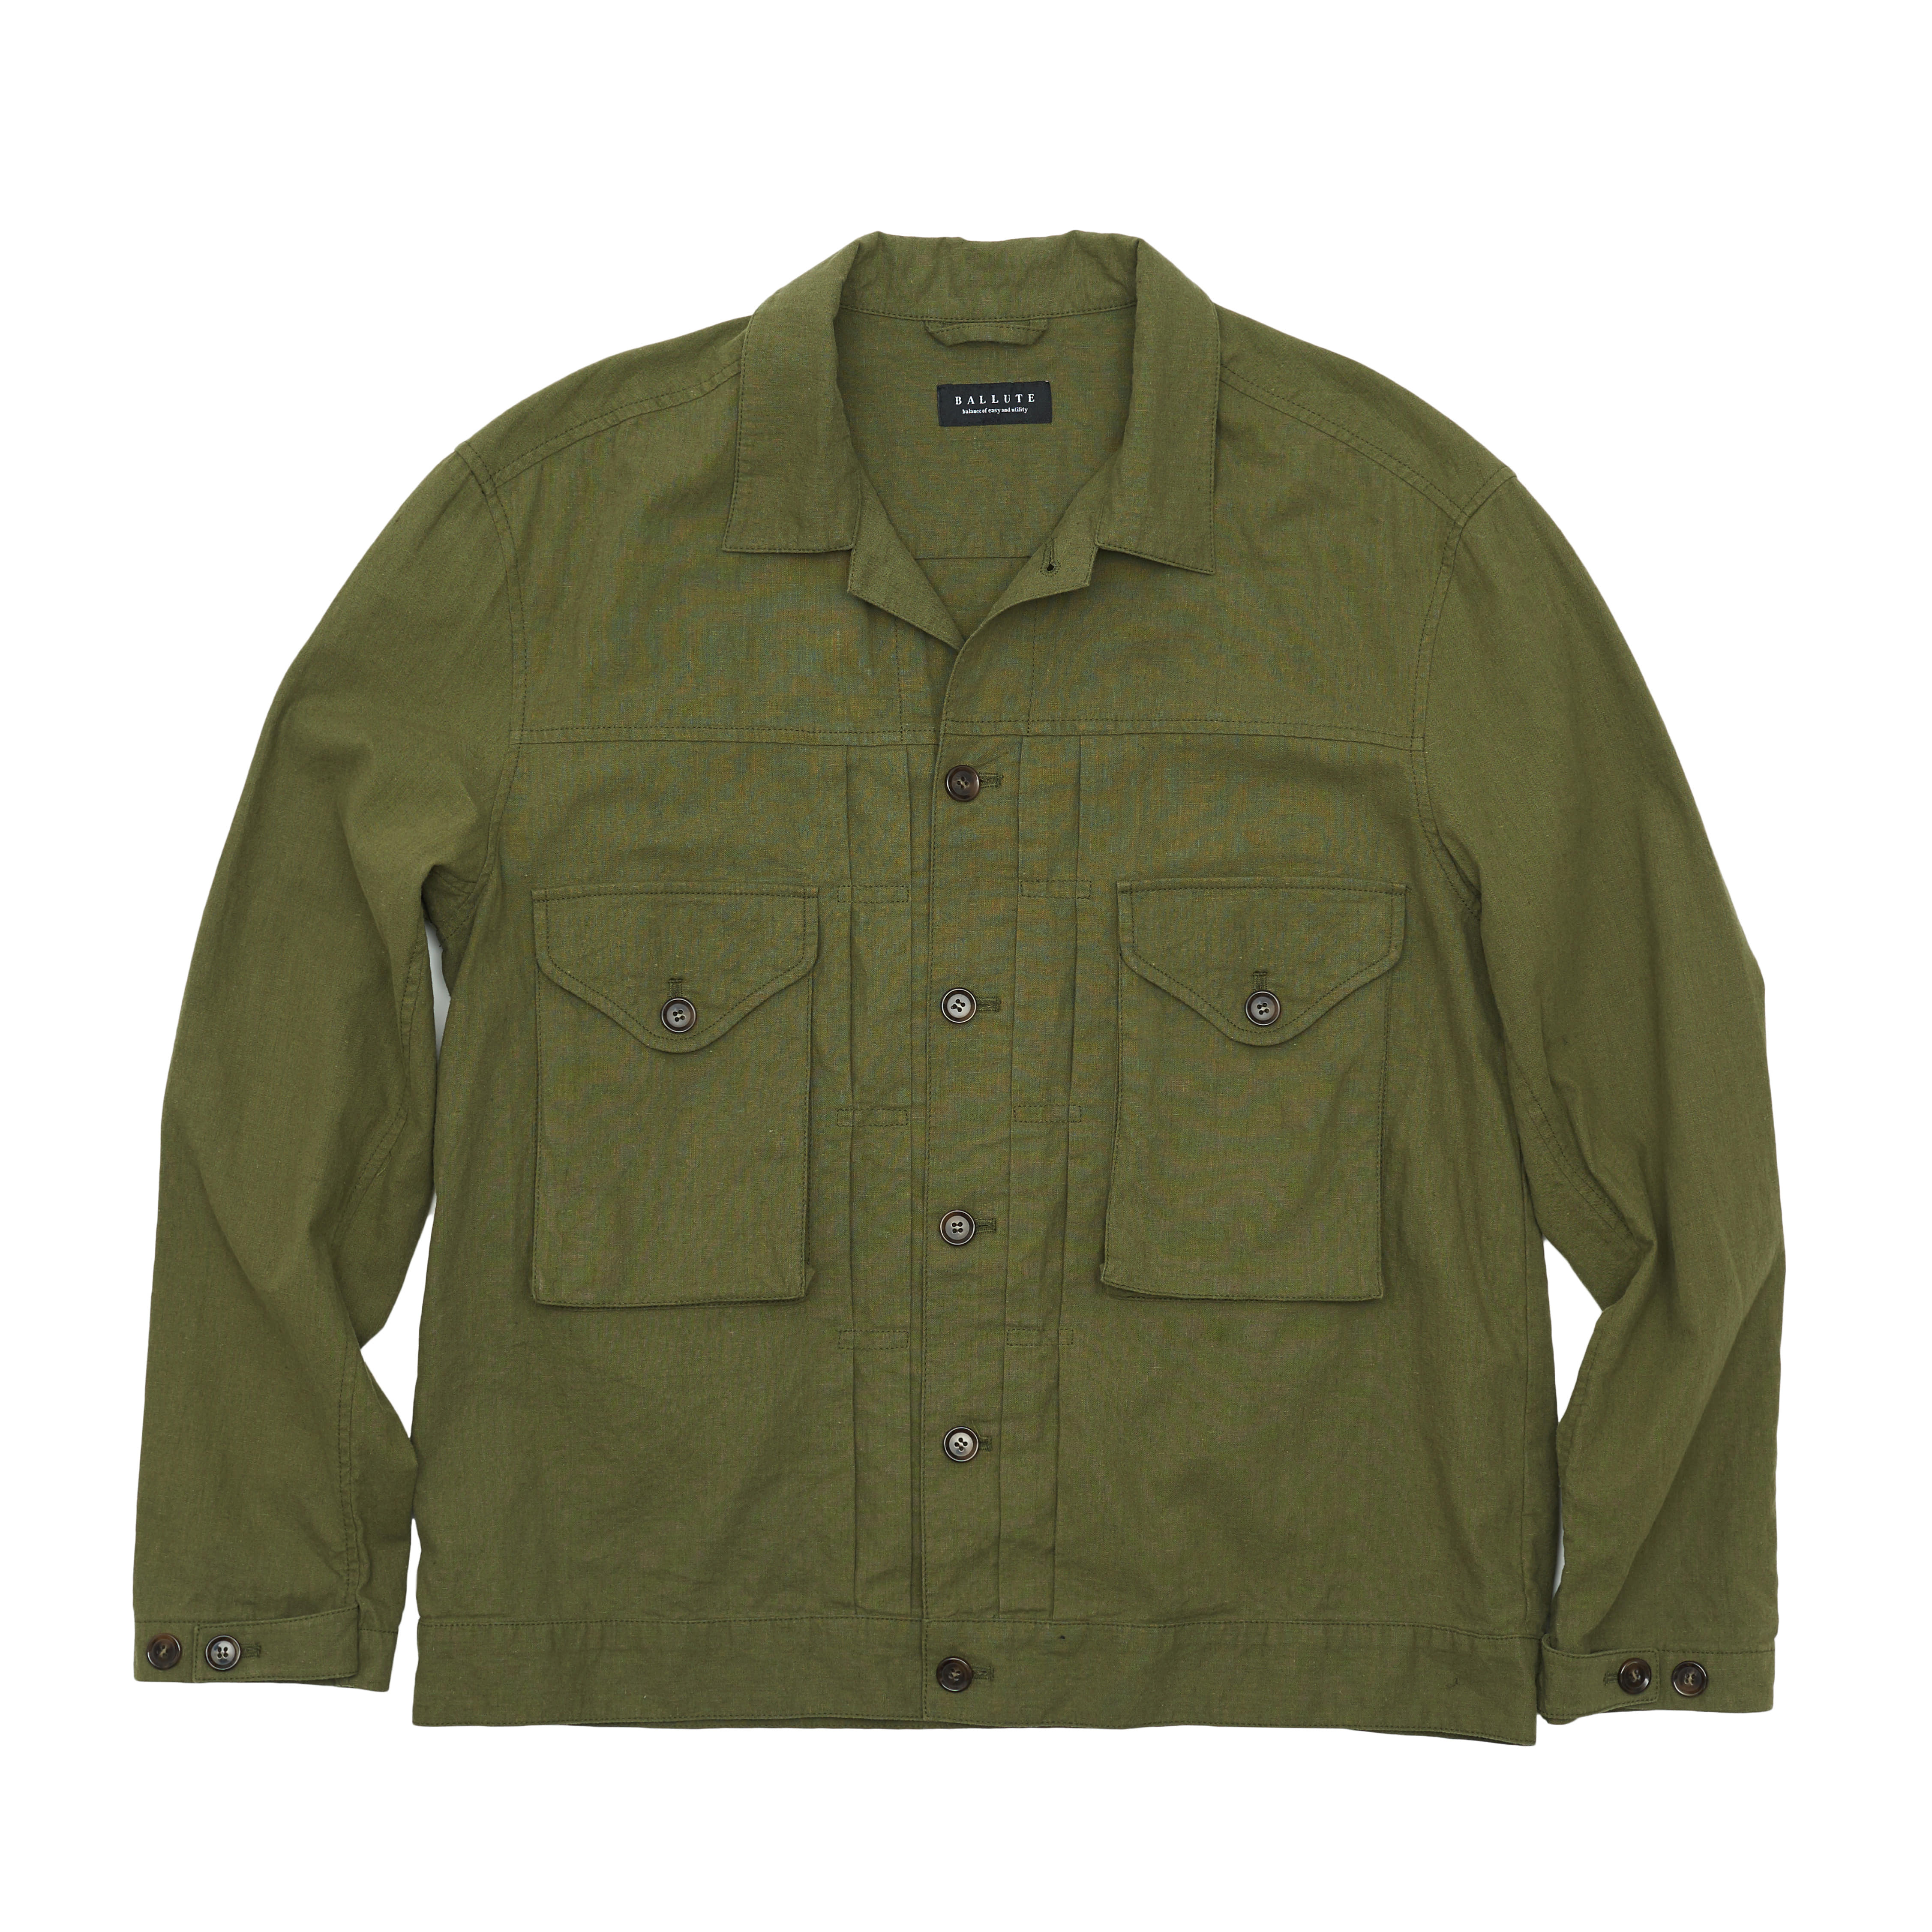 EASY TRUCKER SHIRT JACKET (OLIVE)